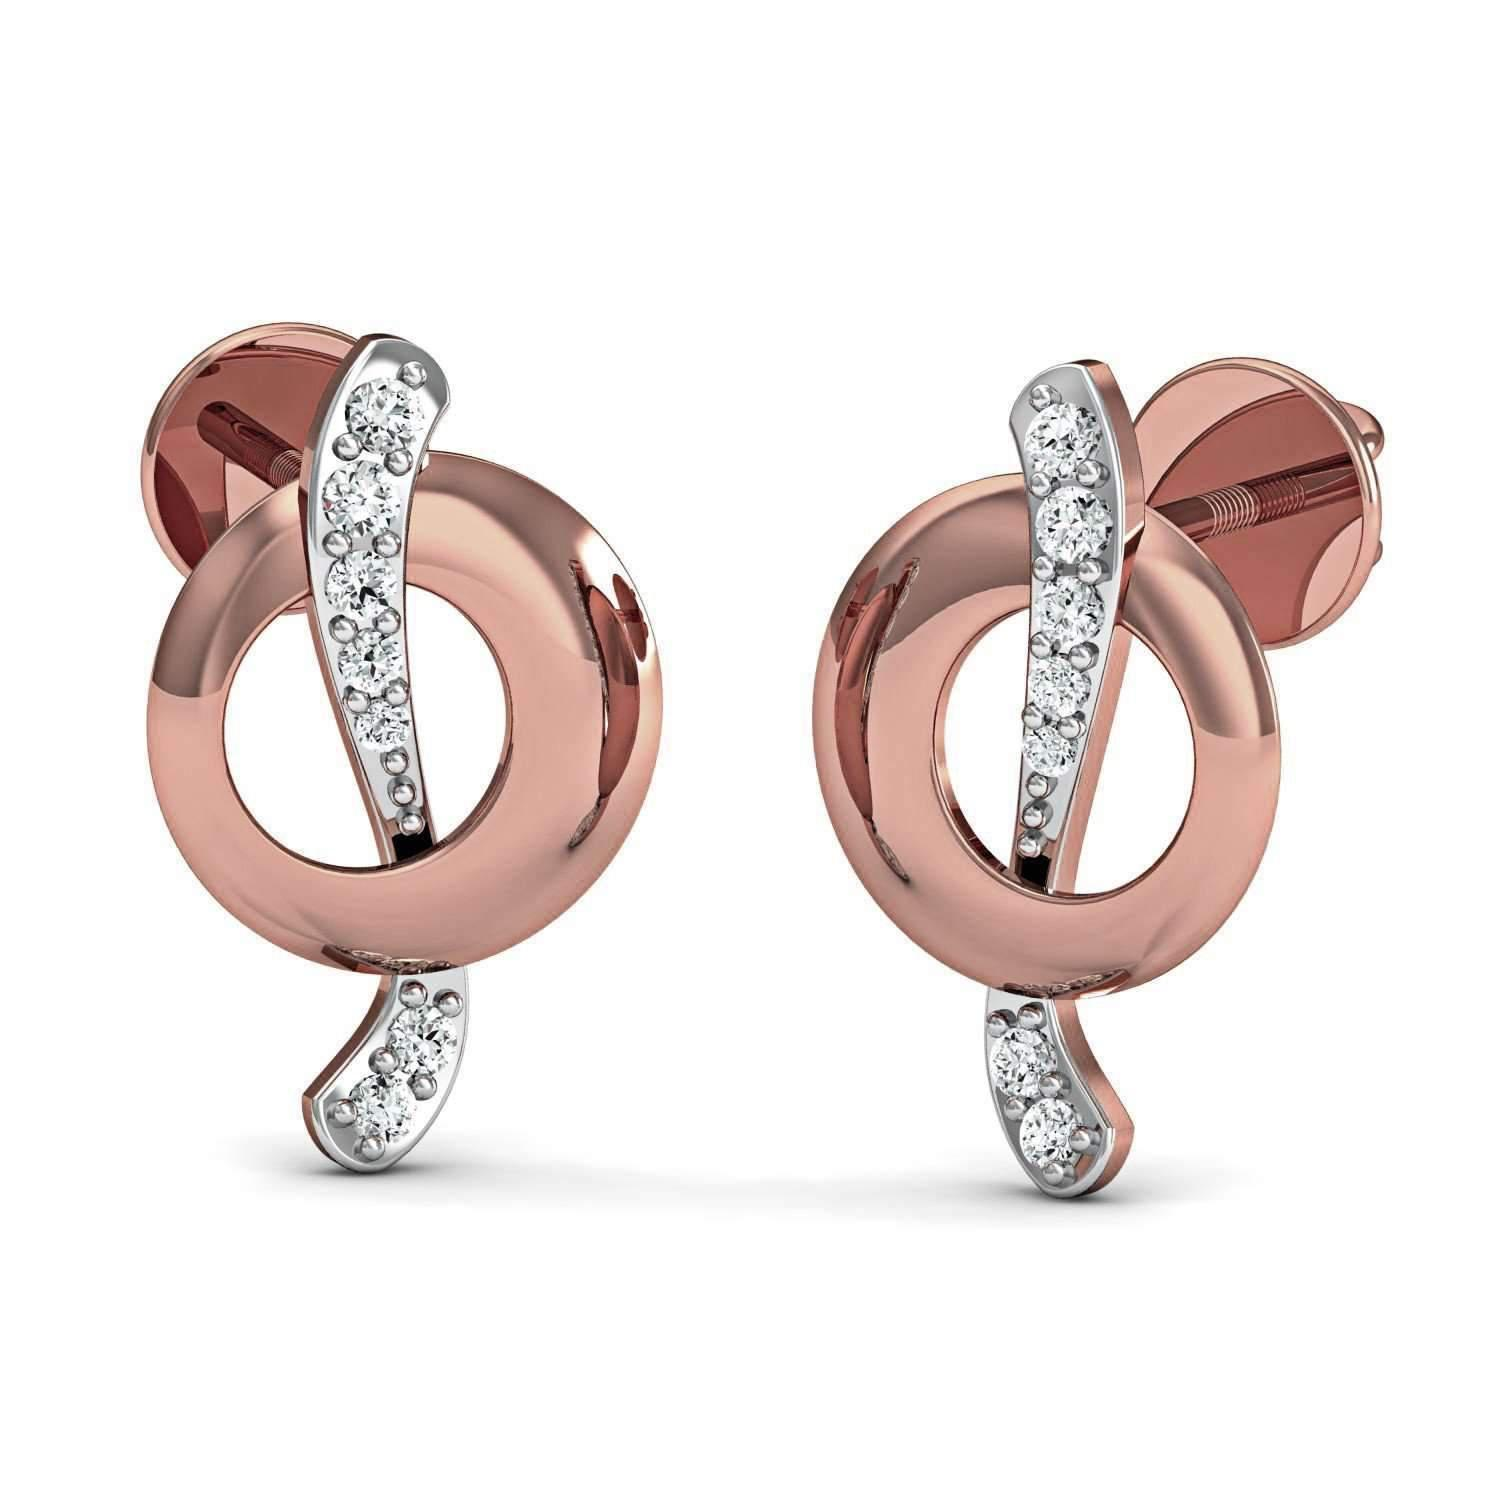 Diamoire Jewels Bezel Set Hoop Earring in 10kt Rose Gold